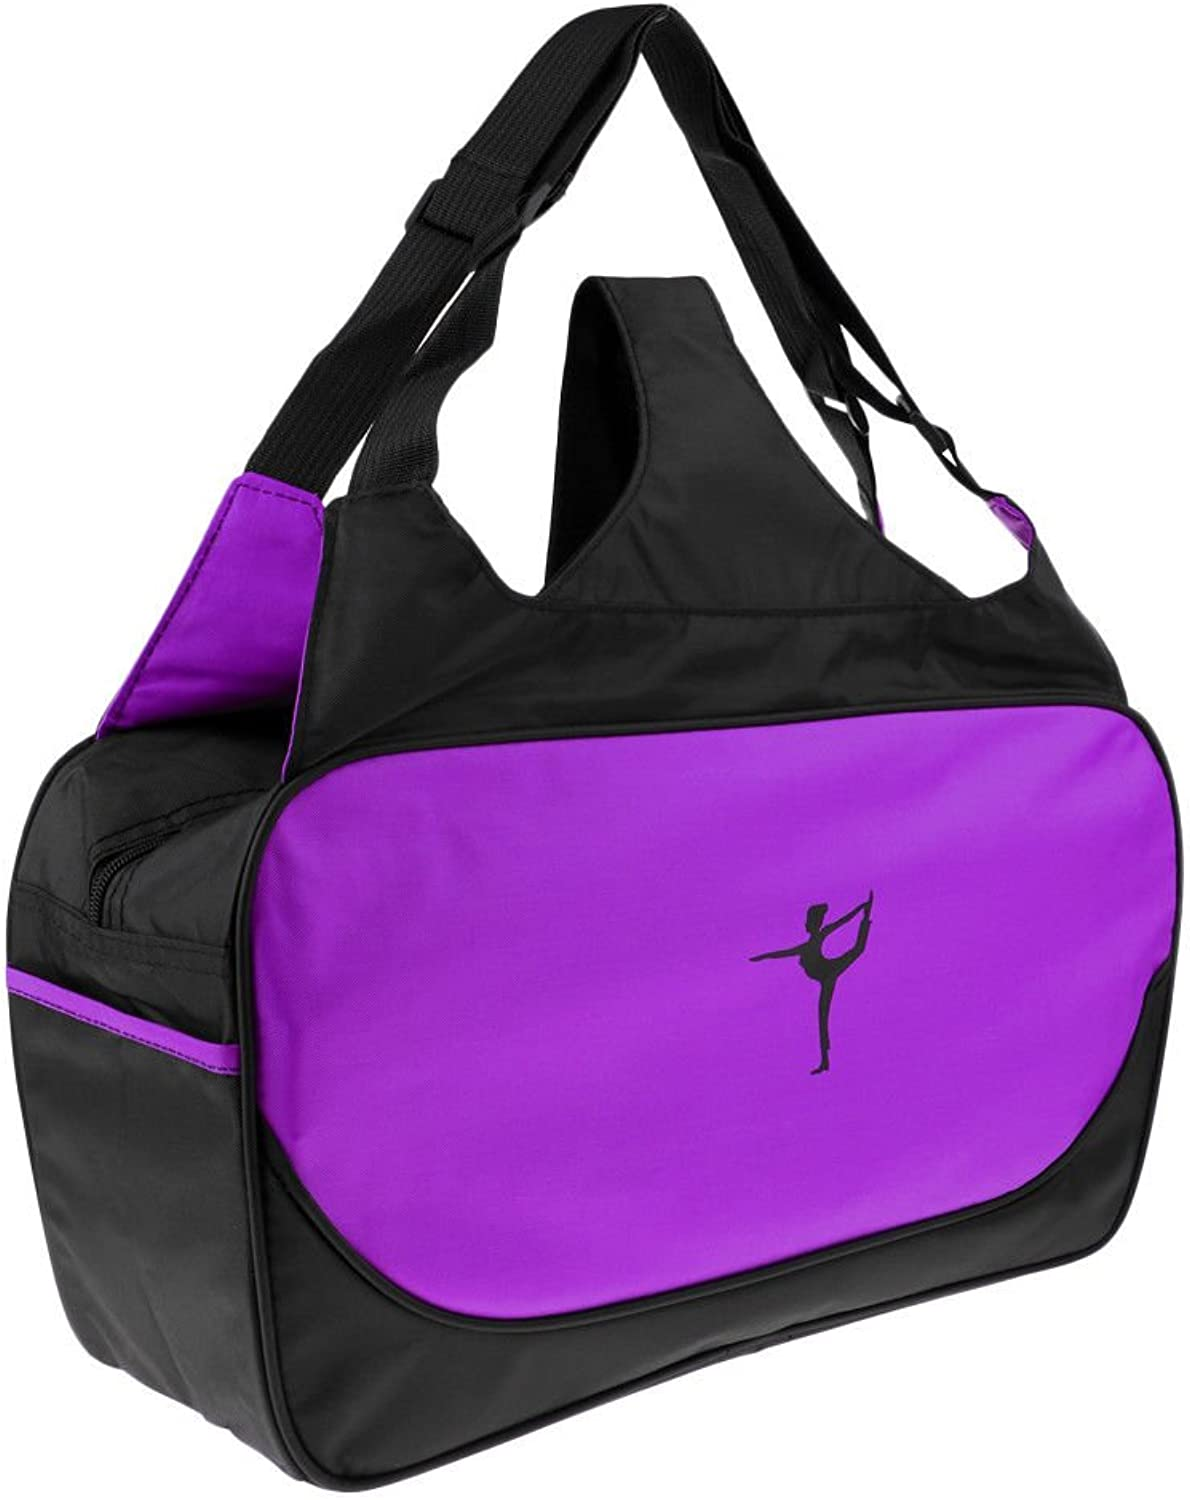 Adjustable Yoga Pilates Mat Bag Multi Purpose Pack Sling Carrier with Strap Purple